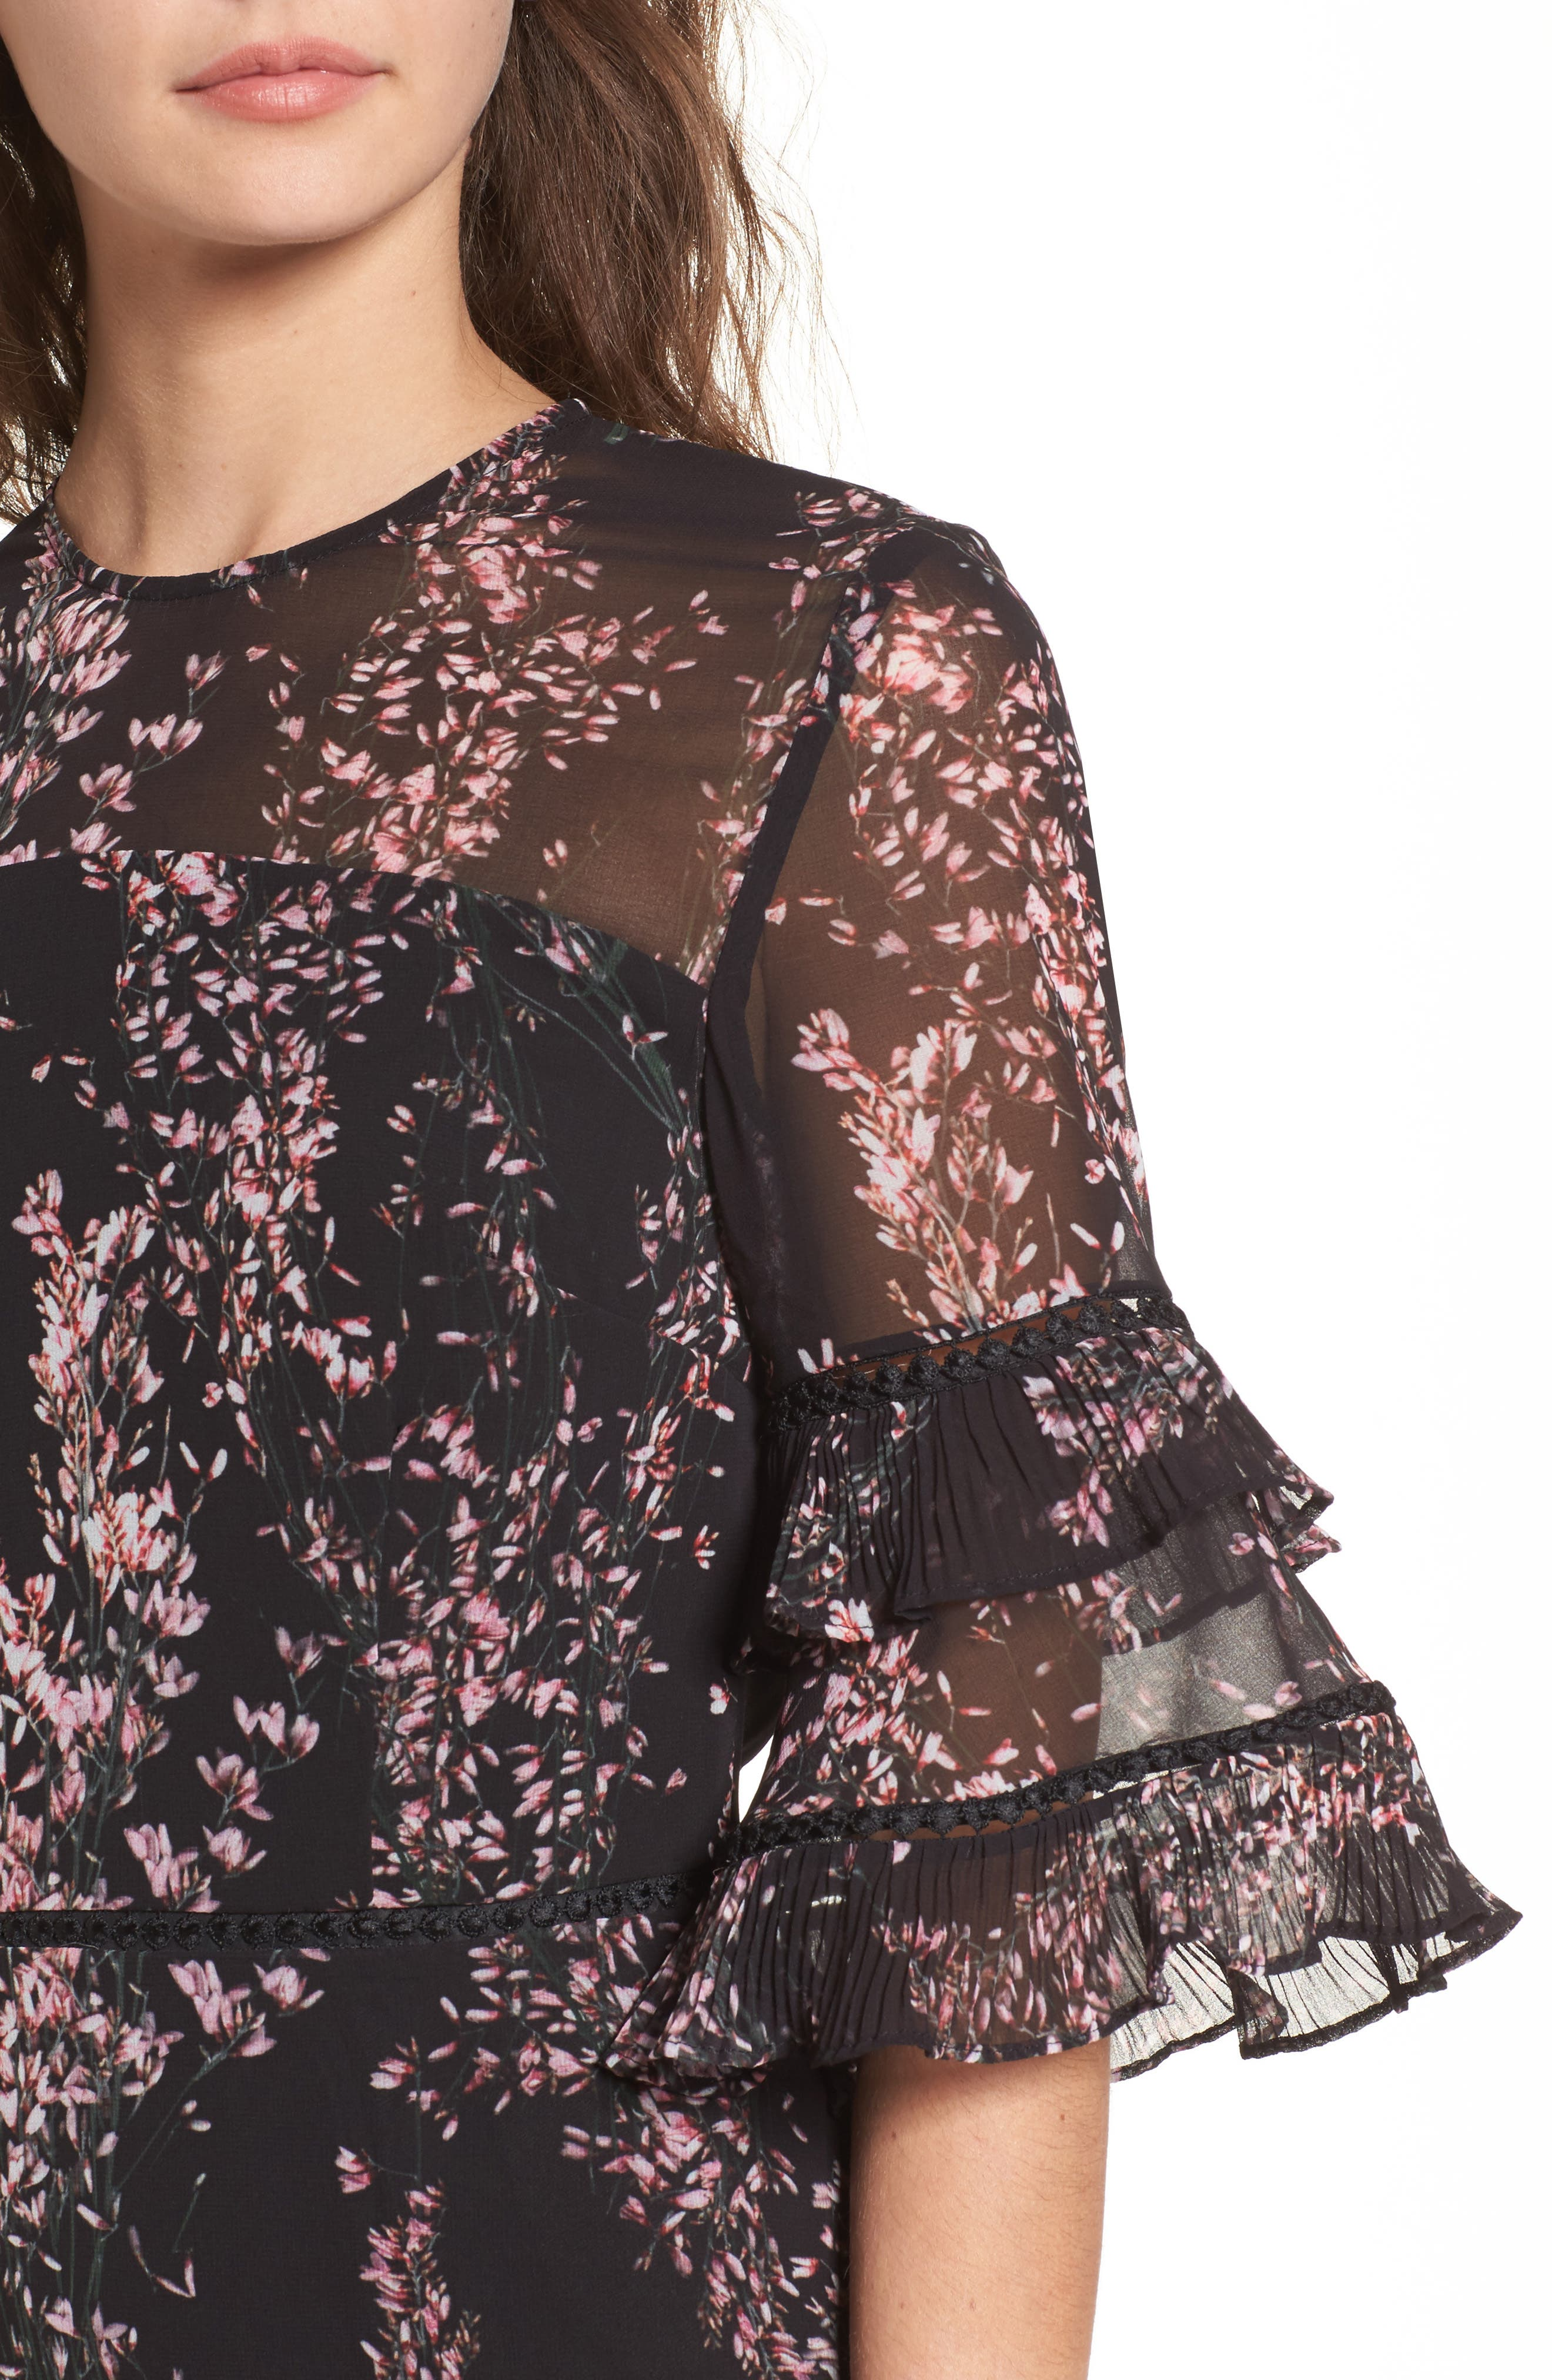 Light Up Ruffle Minidress,                             Alternate thumbnail 4, color,                             Black Wildflower Floral